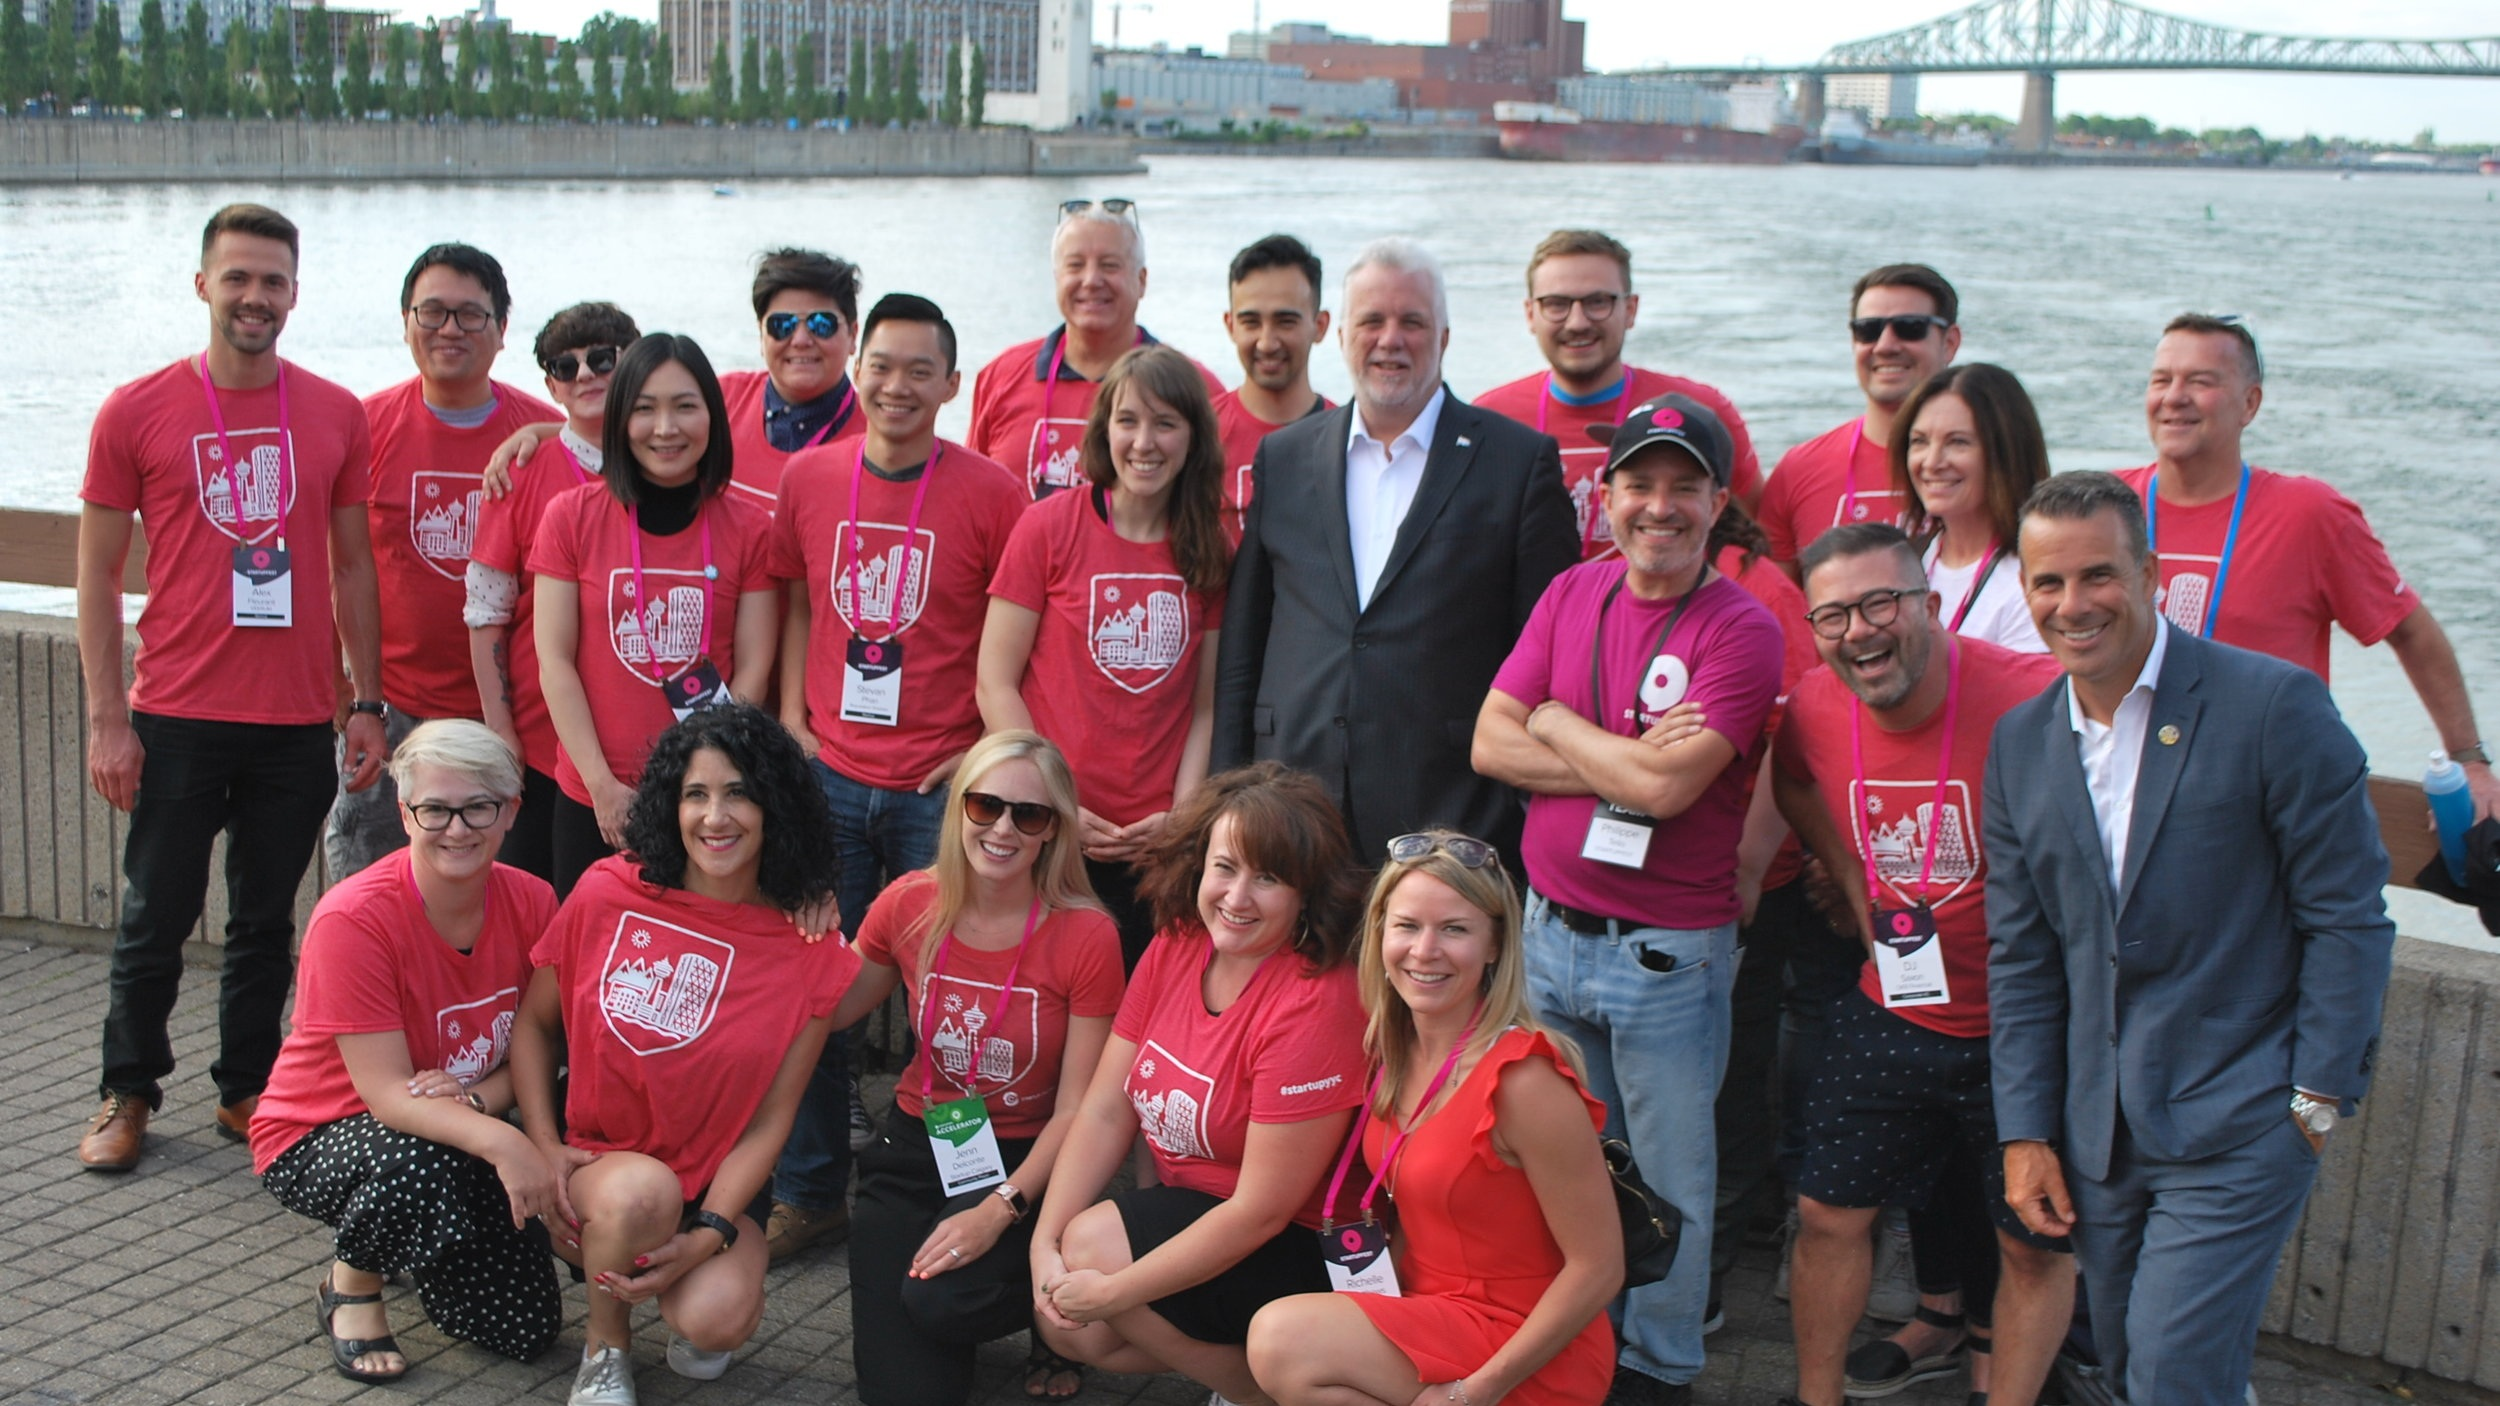 Members of the 2018 Calgary Delegation pictured with 31st Premiere of Quebec, Philippe Couillard & Startupfest Organizer, Phillippe Telio